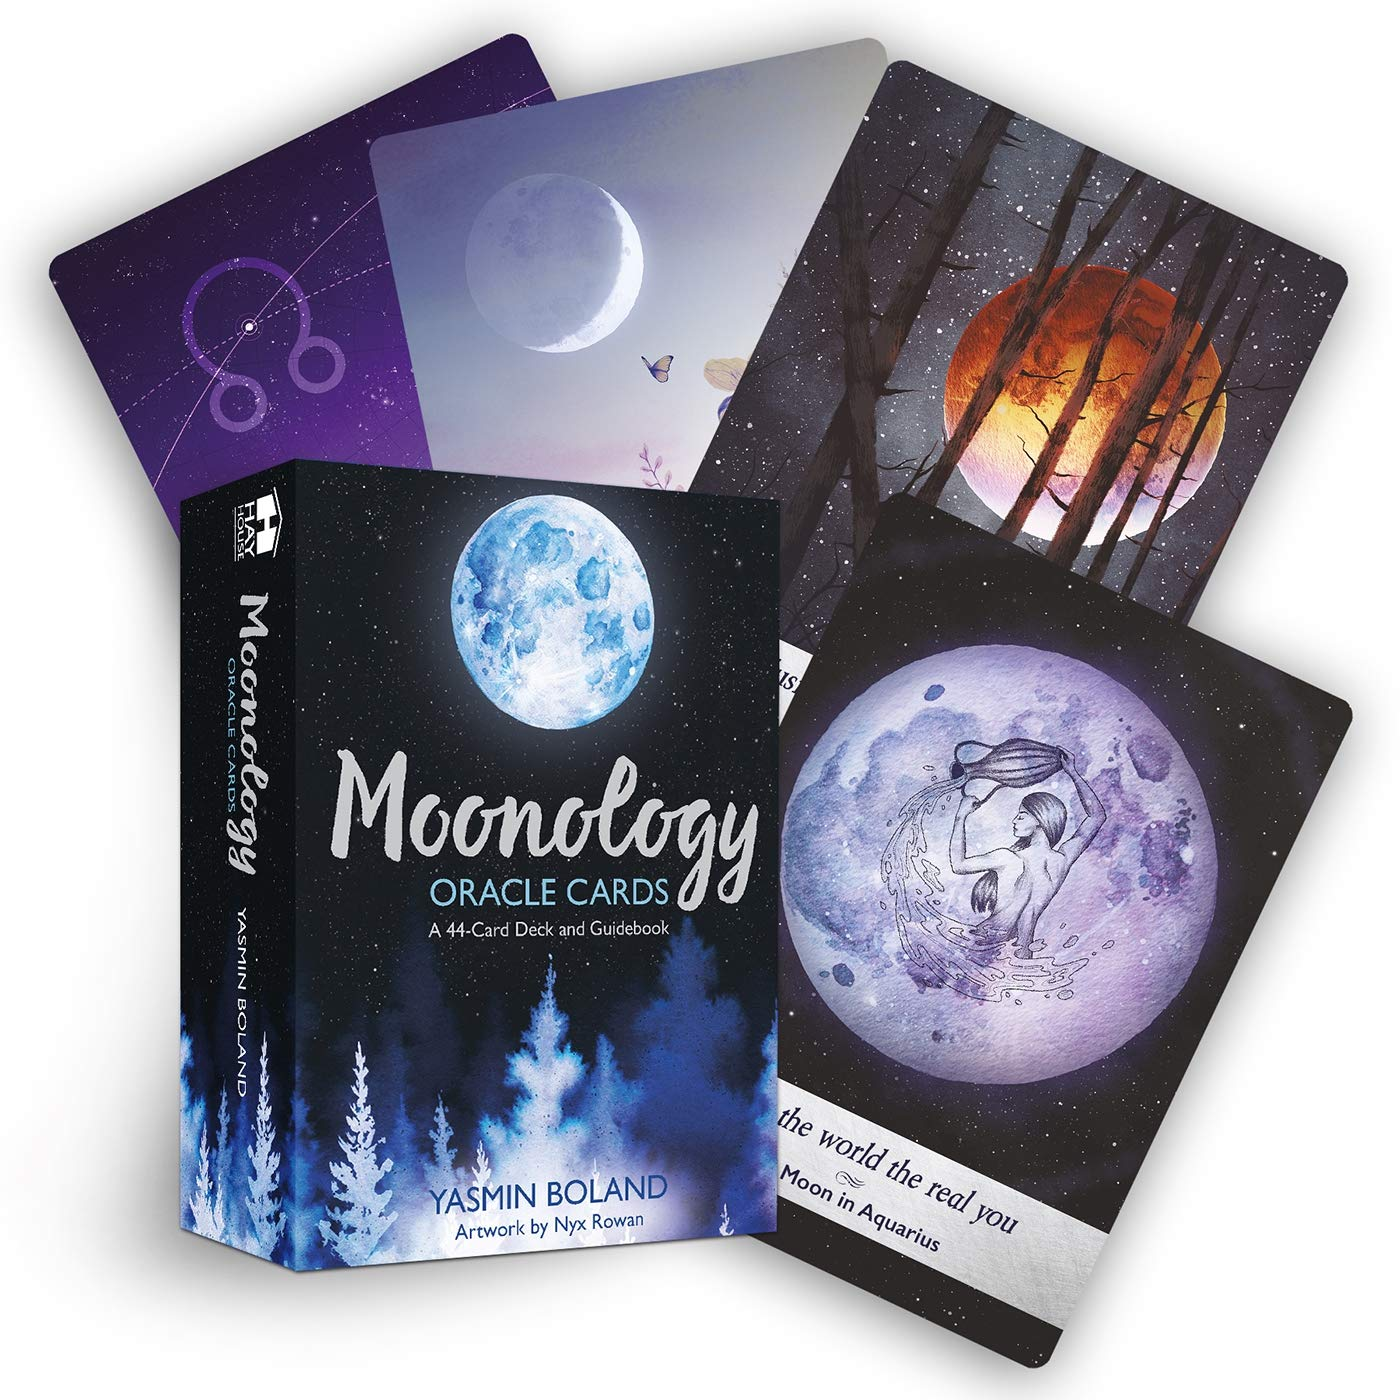 UNTERING Moonology Oracle Cards 44 Cards Deck Full English Oracle Card Divination